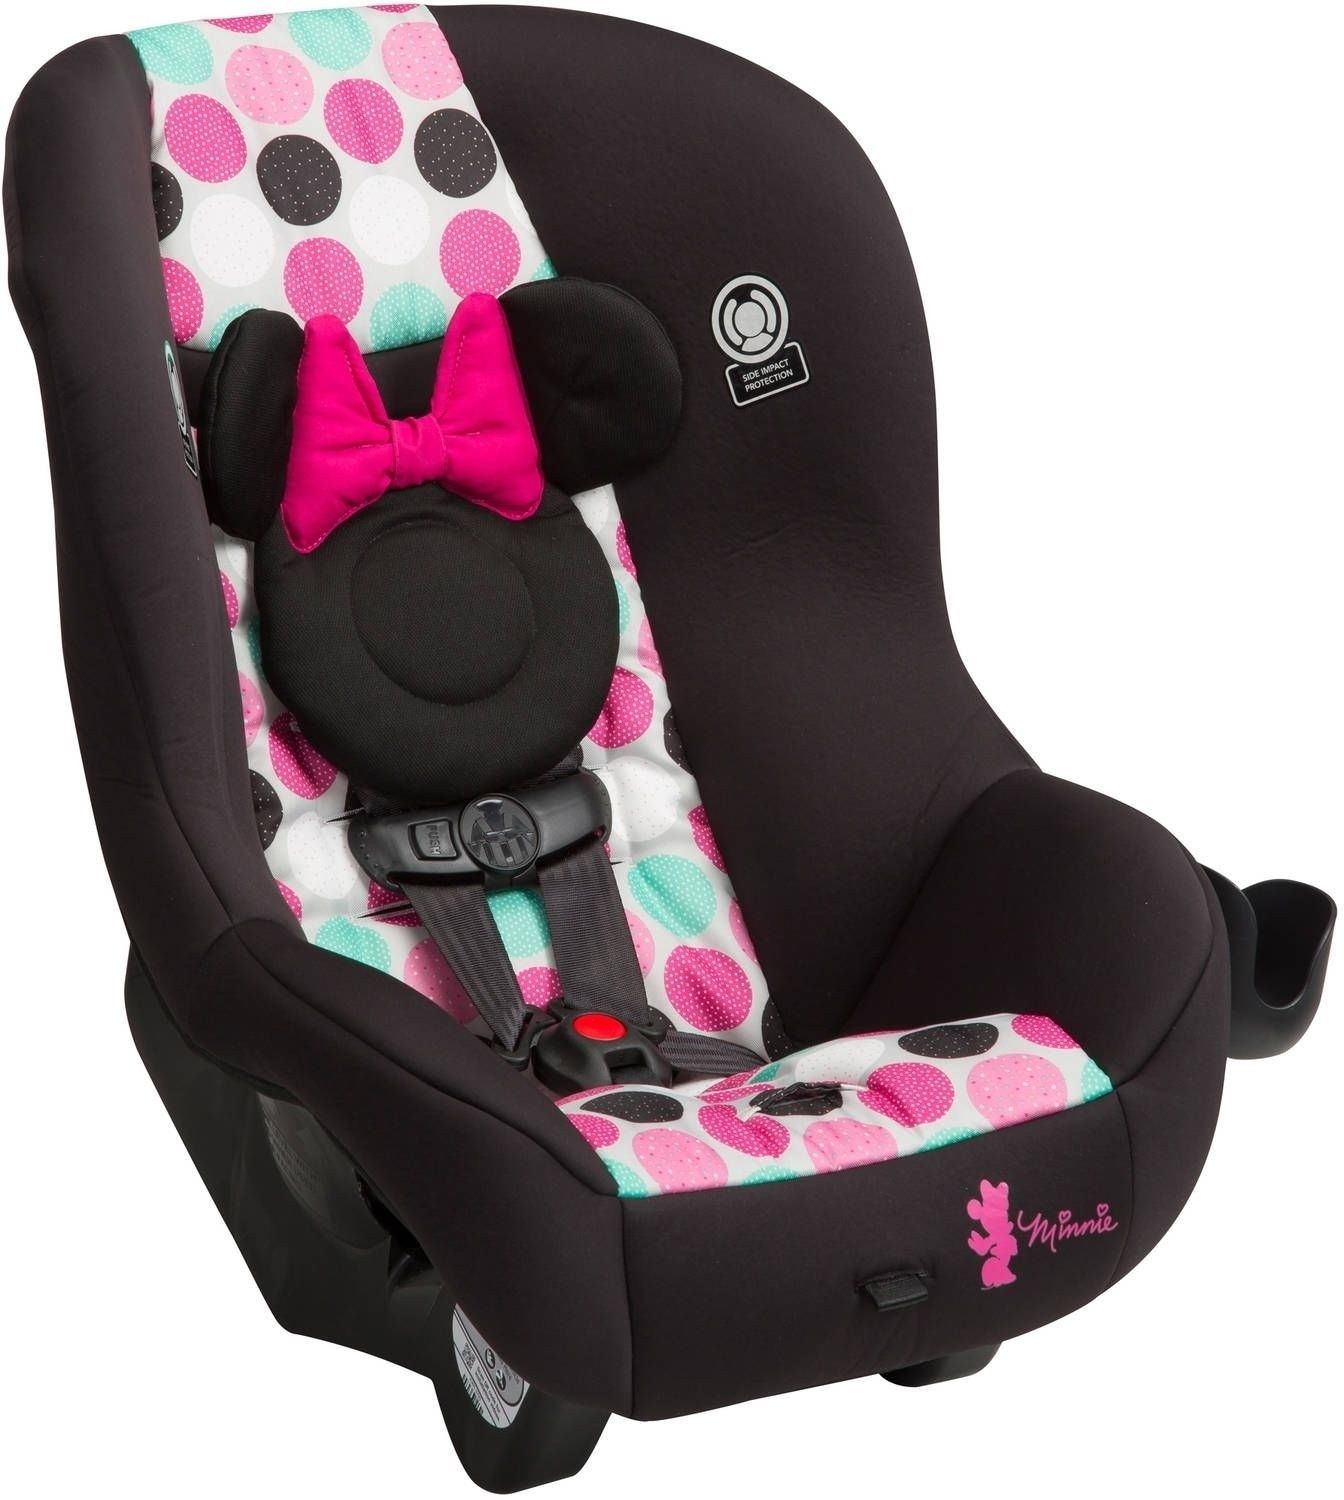 Disney Minnie Mouse Baby Pink Girls Car Seat Infant Toddler Safety